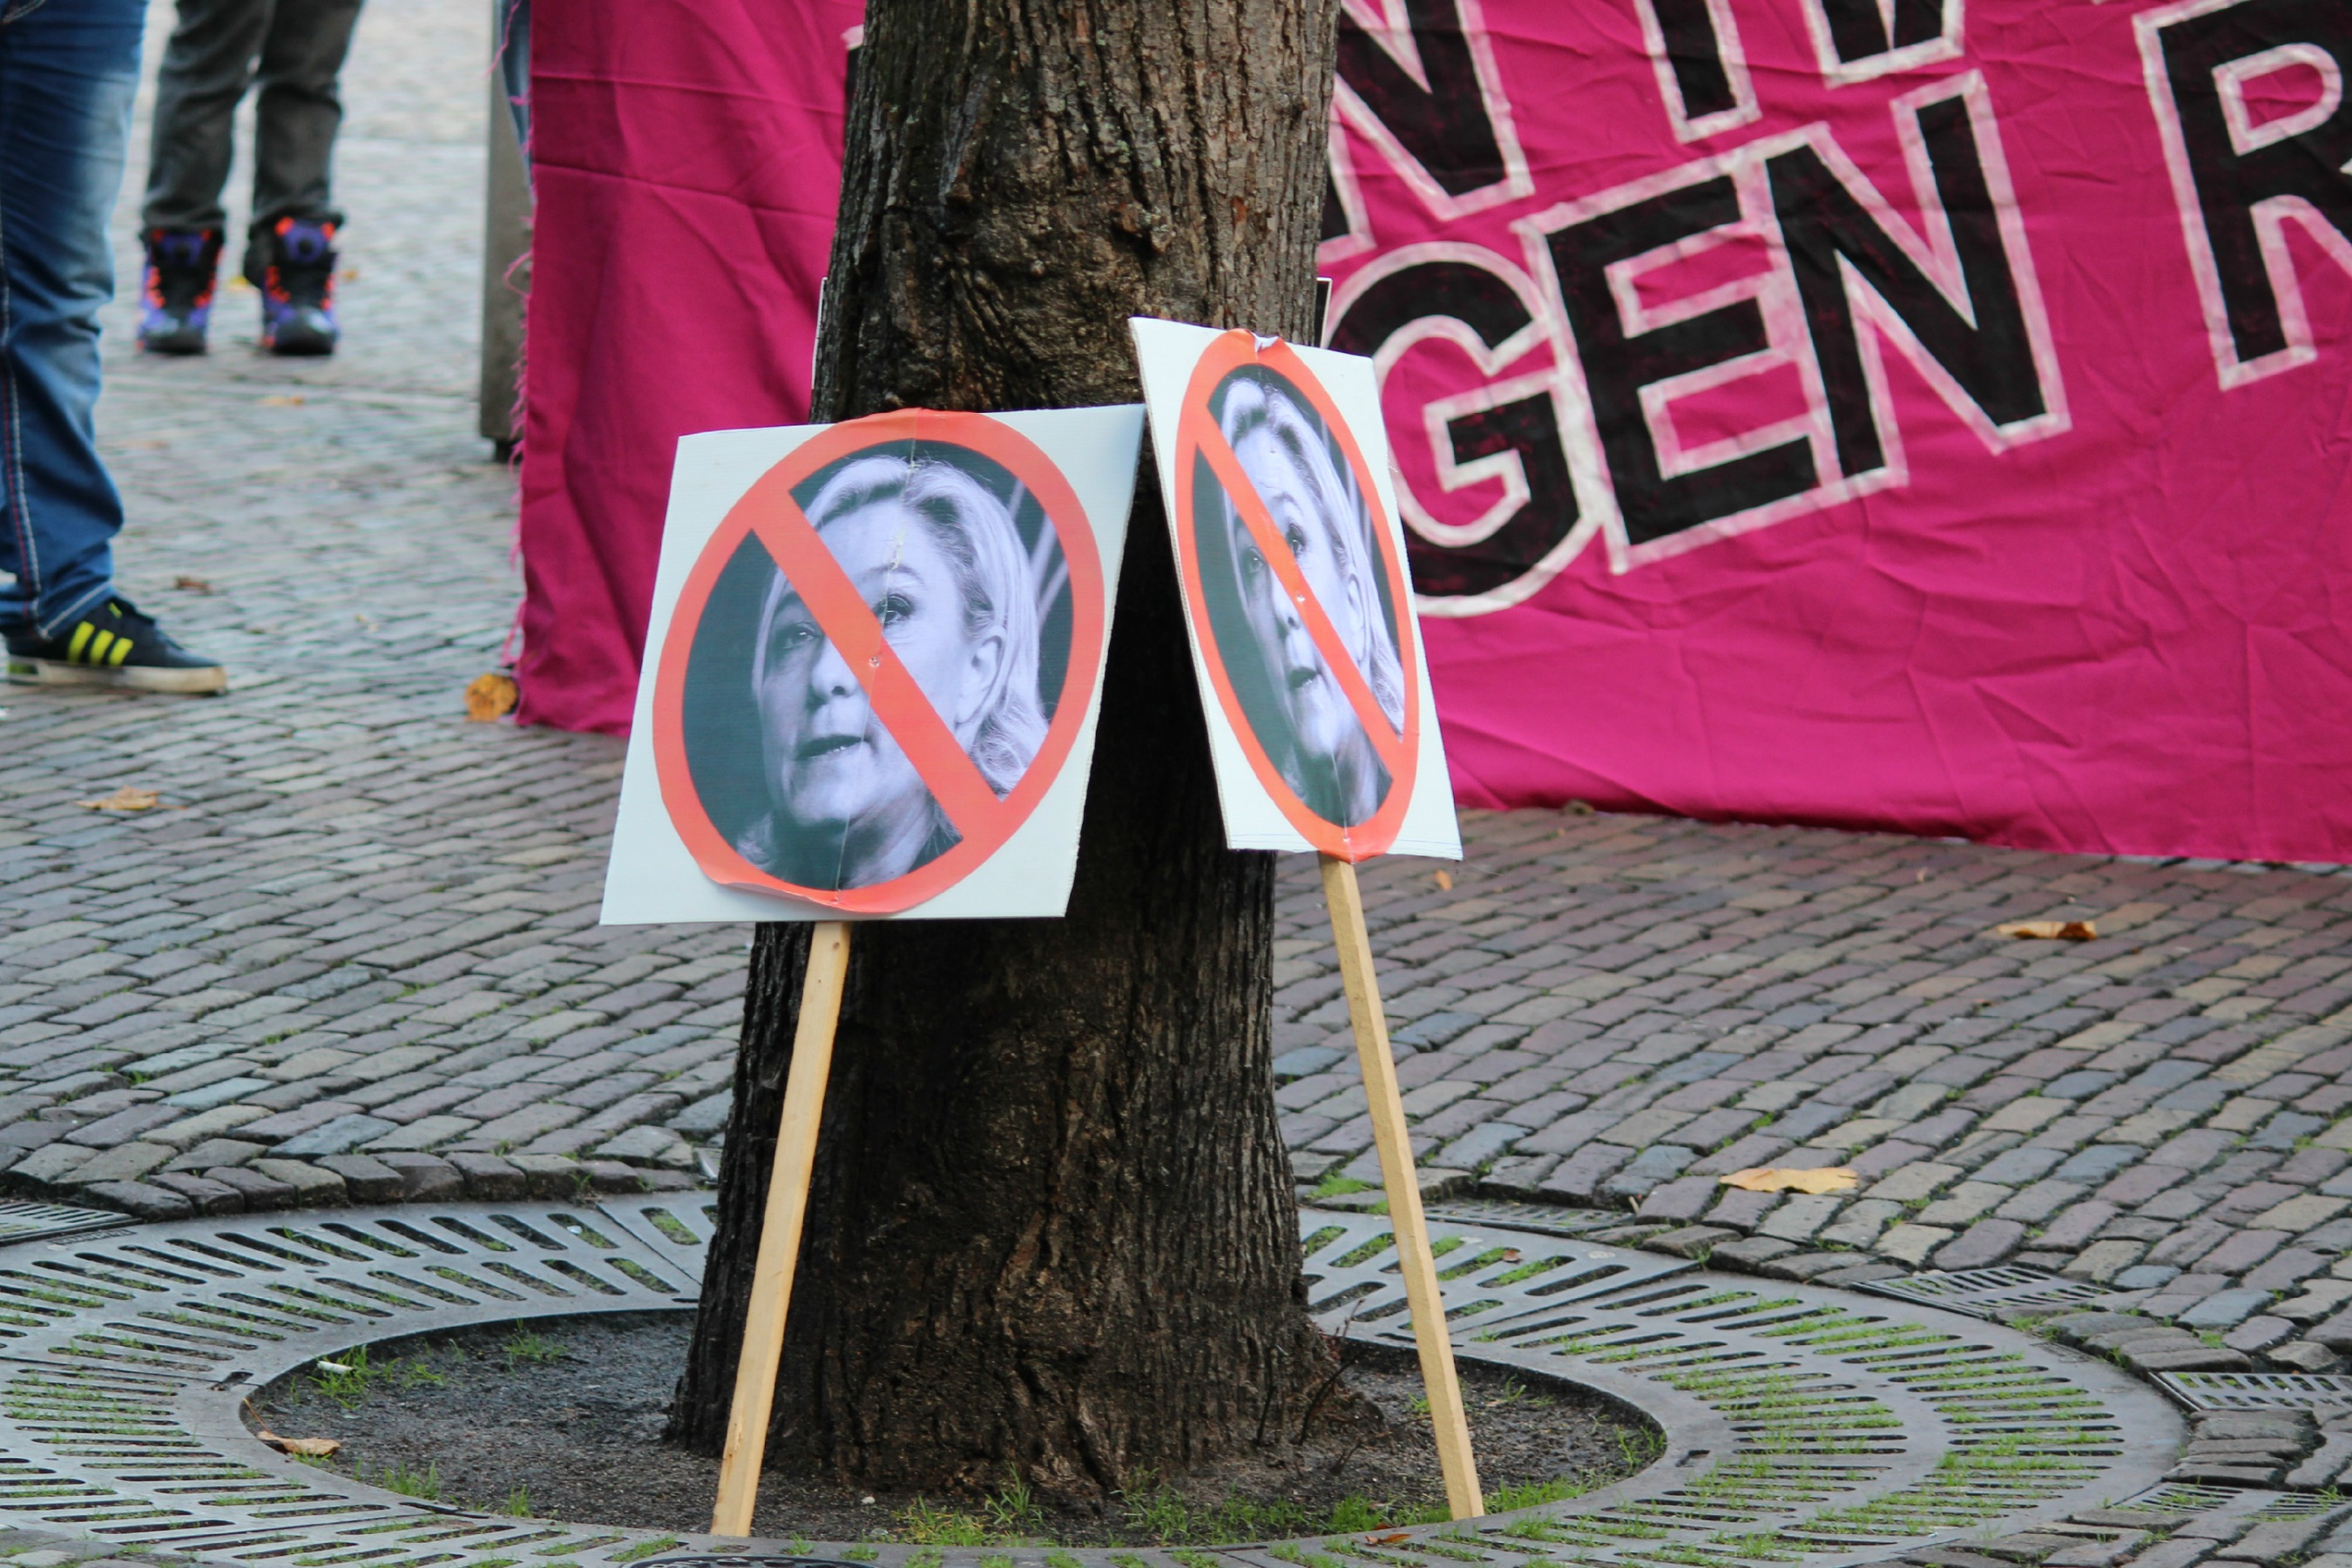 Marine Le Pen signs in protest, The Hague [marie-II/Flickr]